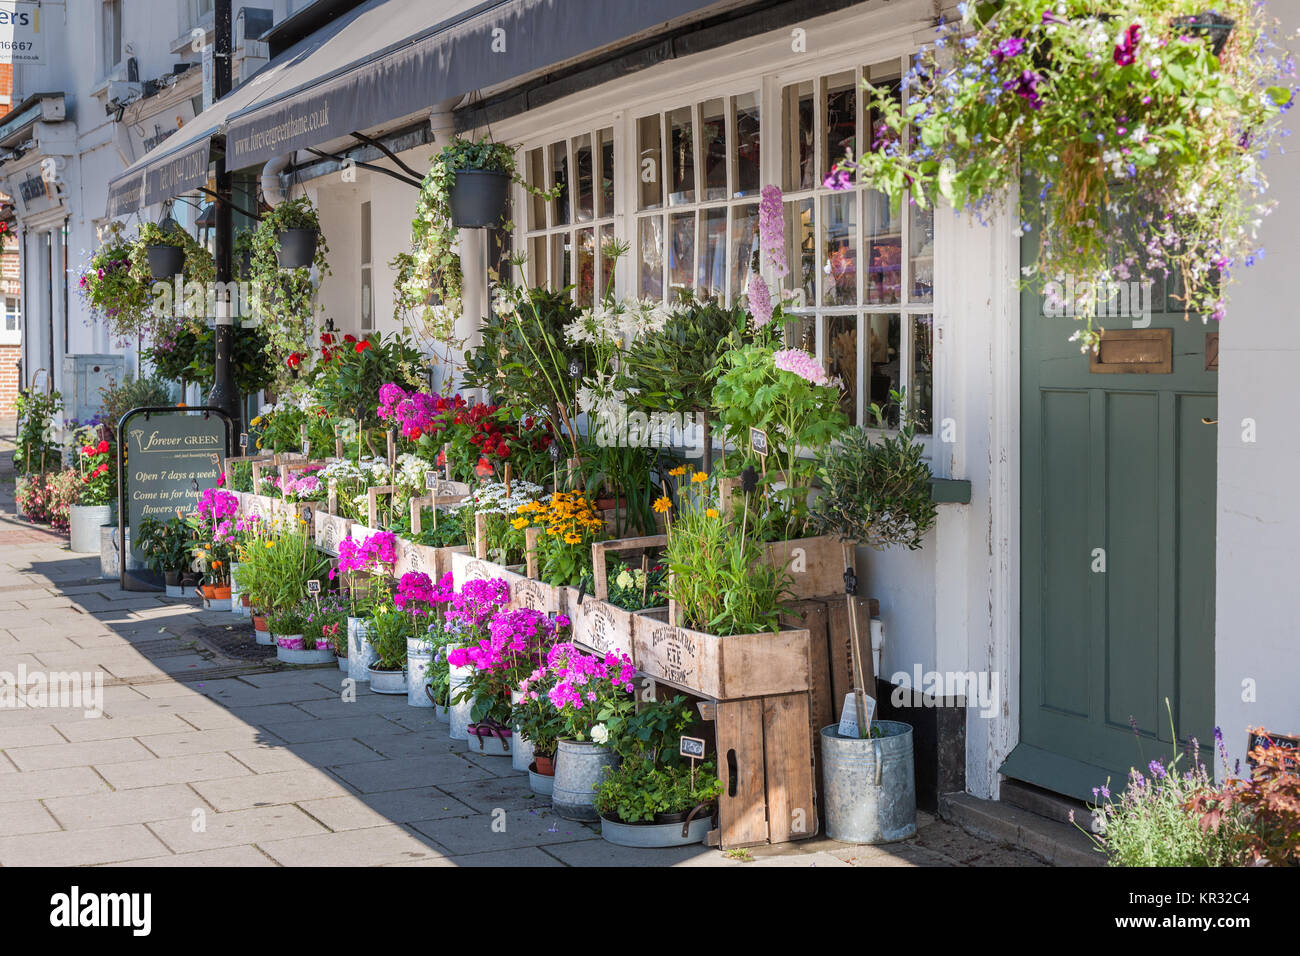 Exterior of Flower shop in high street Thame Oxfordshire UK - Stock Image